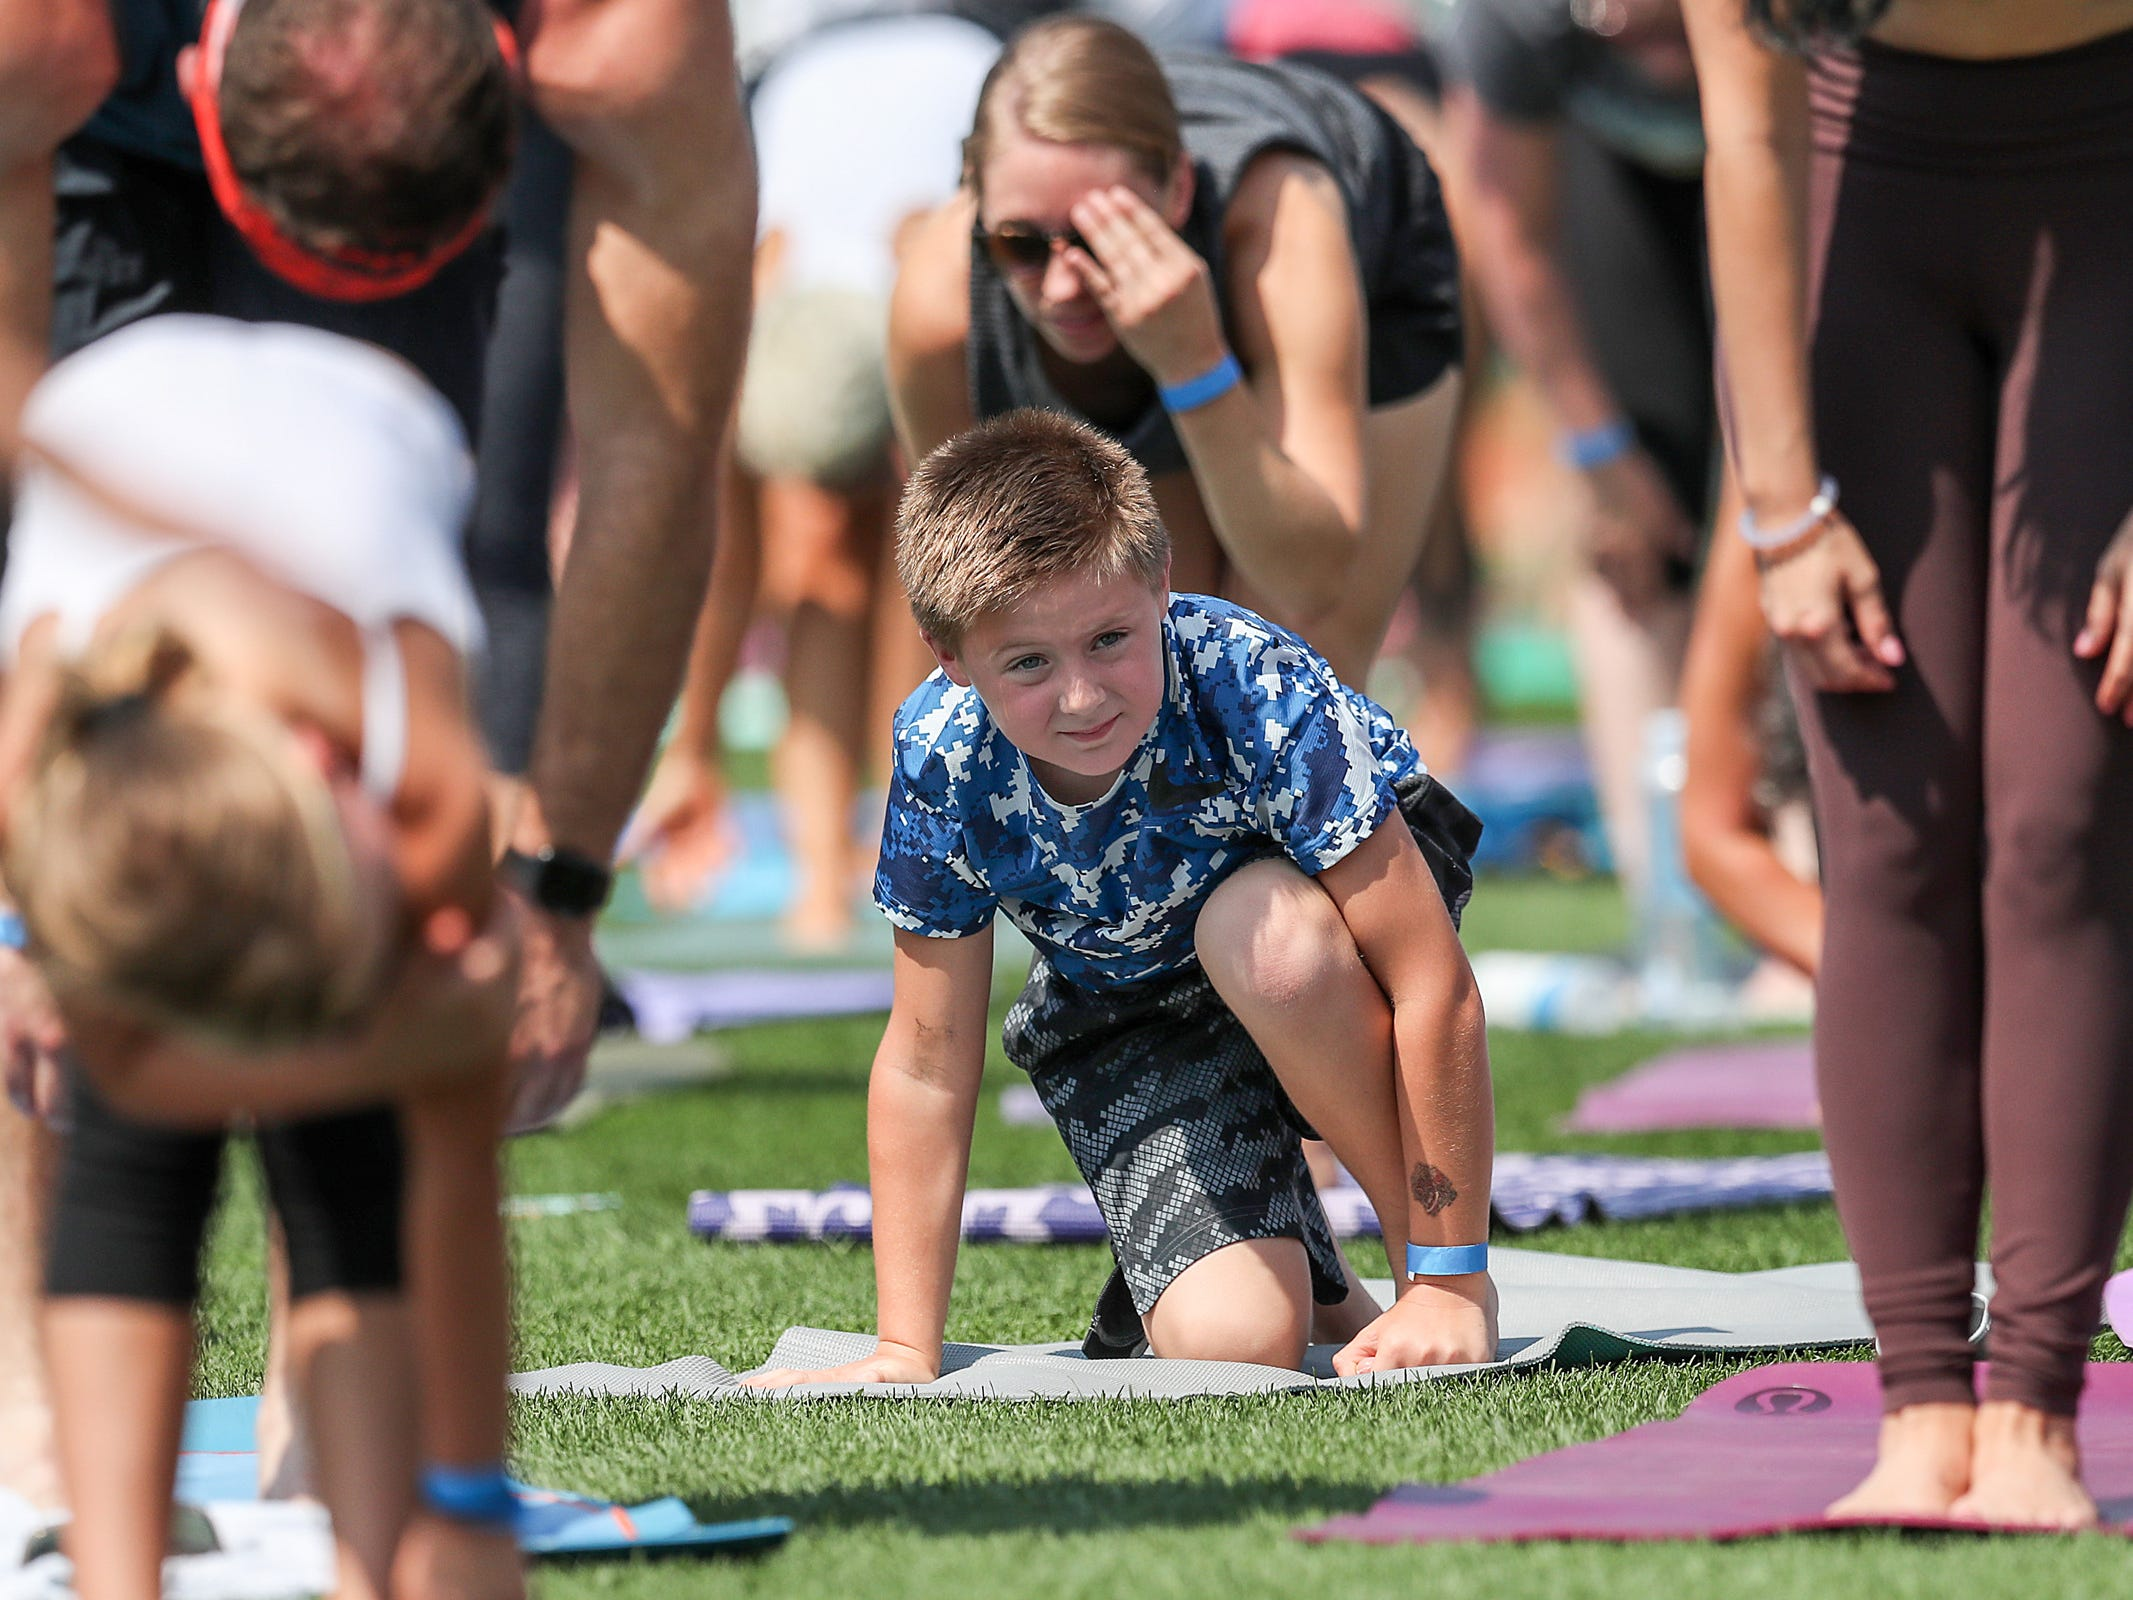 Kyle Carr, 7, of Detroit, pauses between poses during Yoga in the Outfield at Victory Field in Indianapolis, Sunday, Aug. 12, 2018.